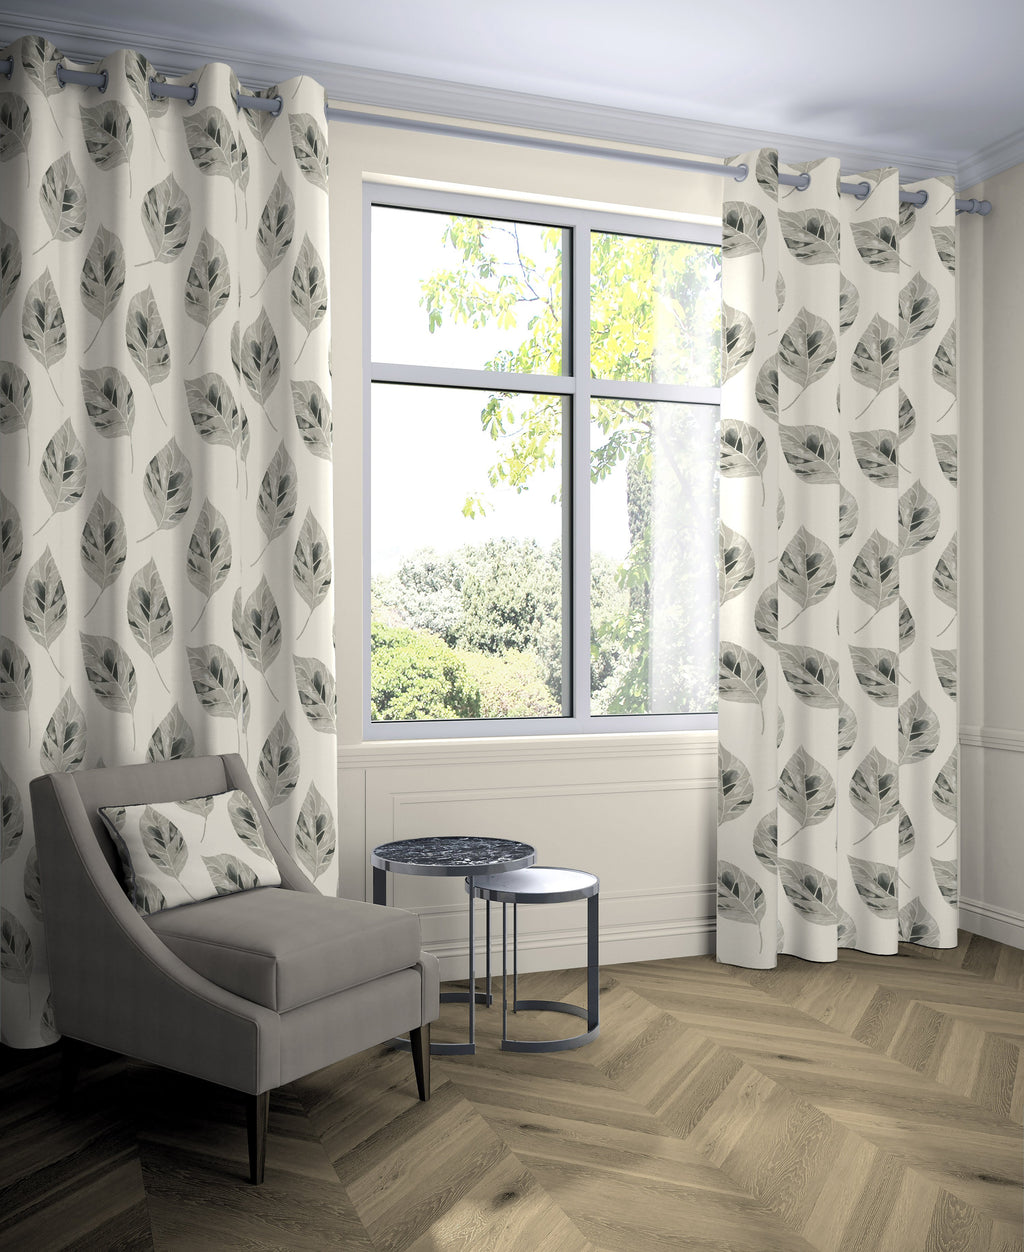 McAlister Textiles Leaf Soft Grey Floral Cotton Print Curtains Tailored Curtains